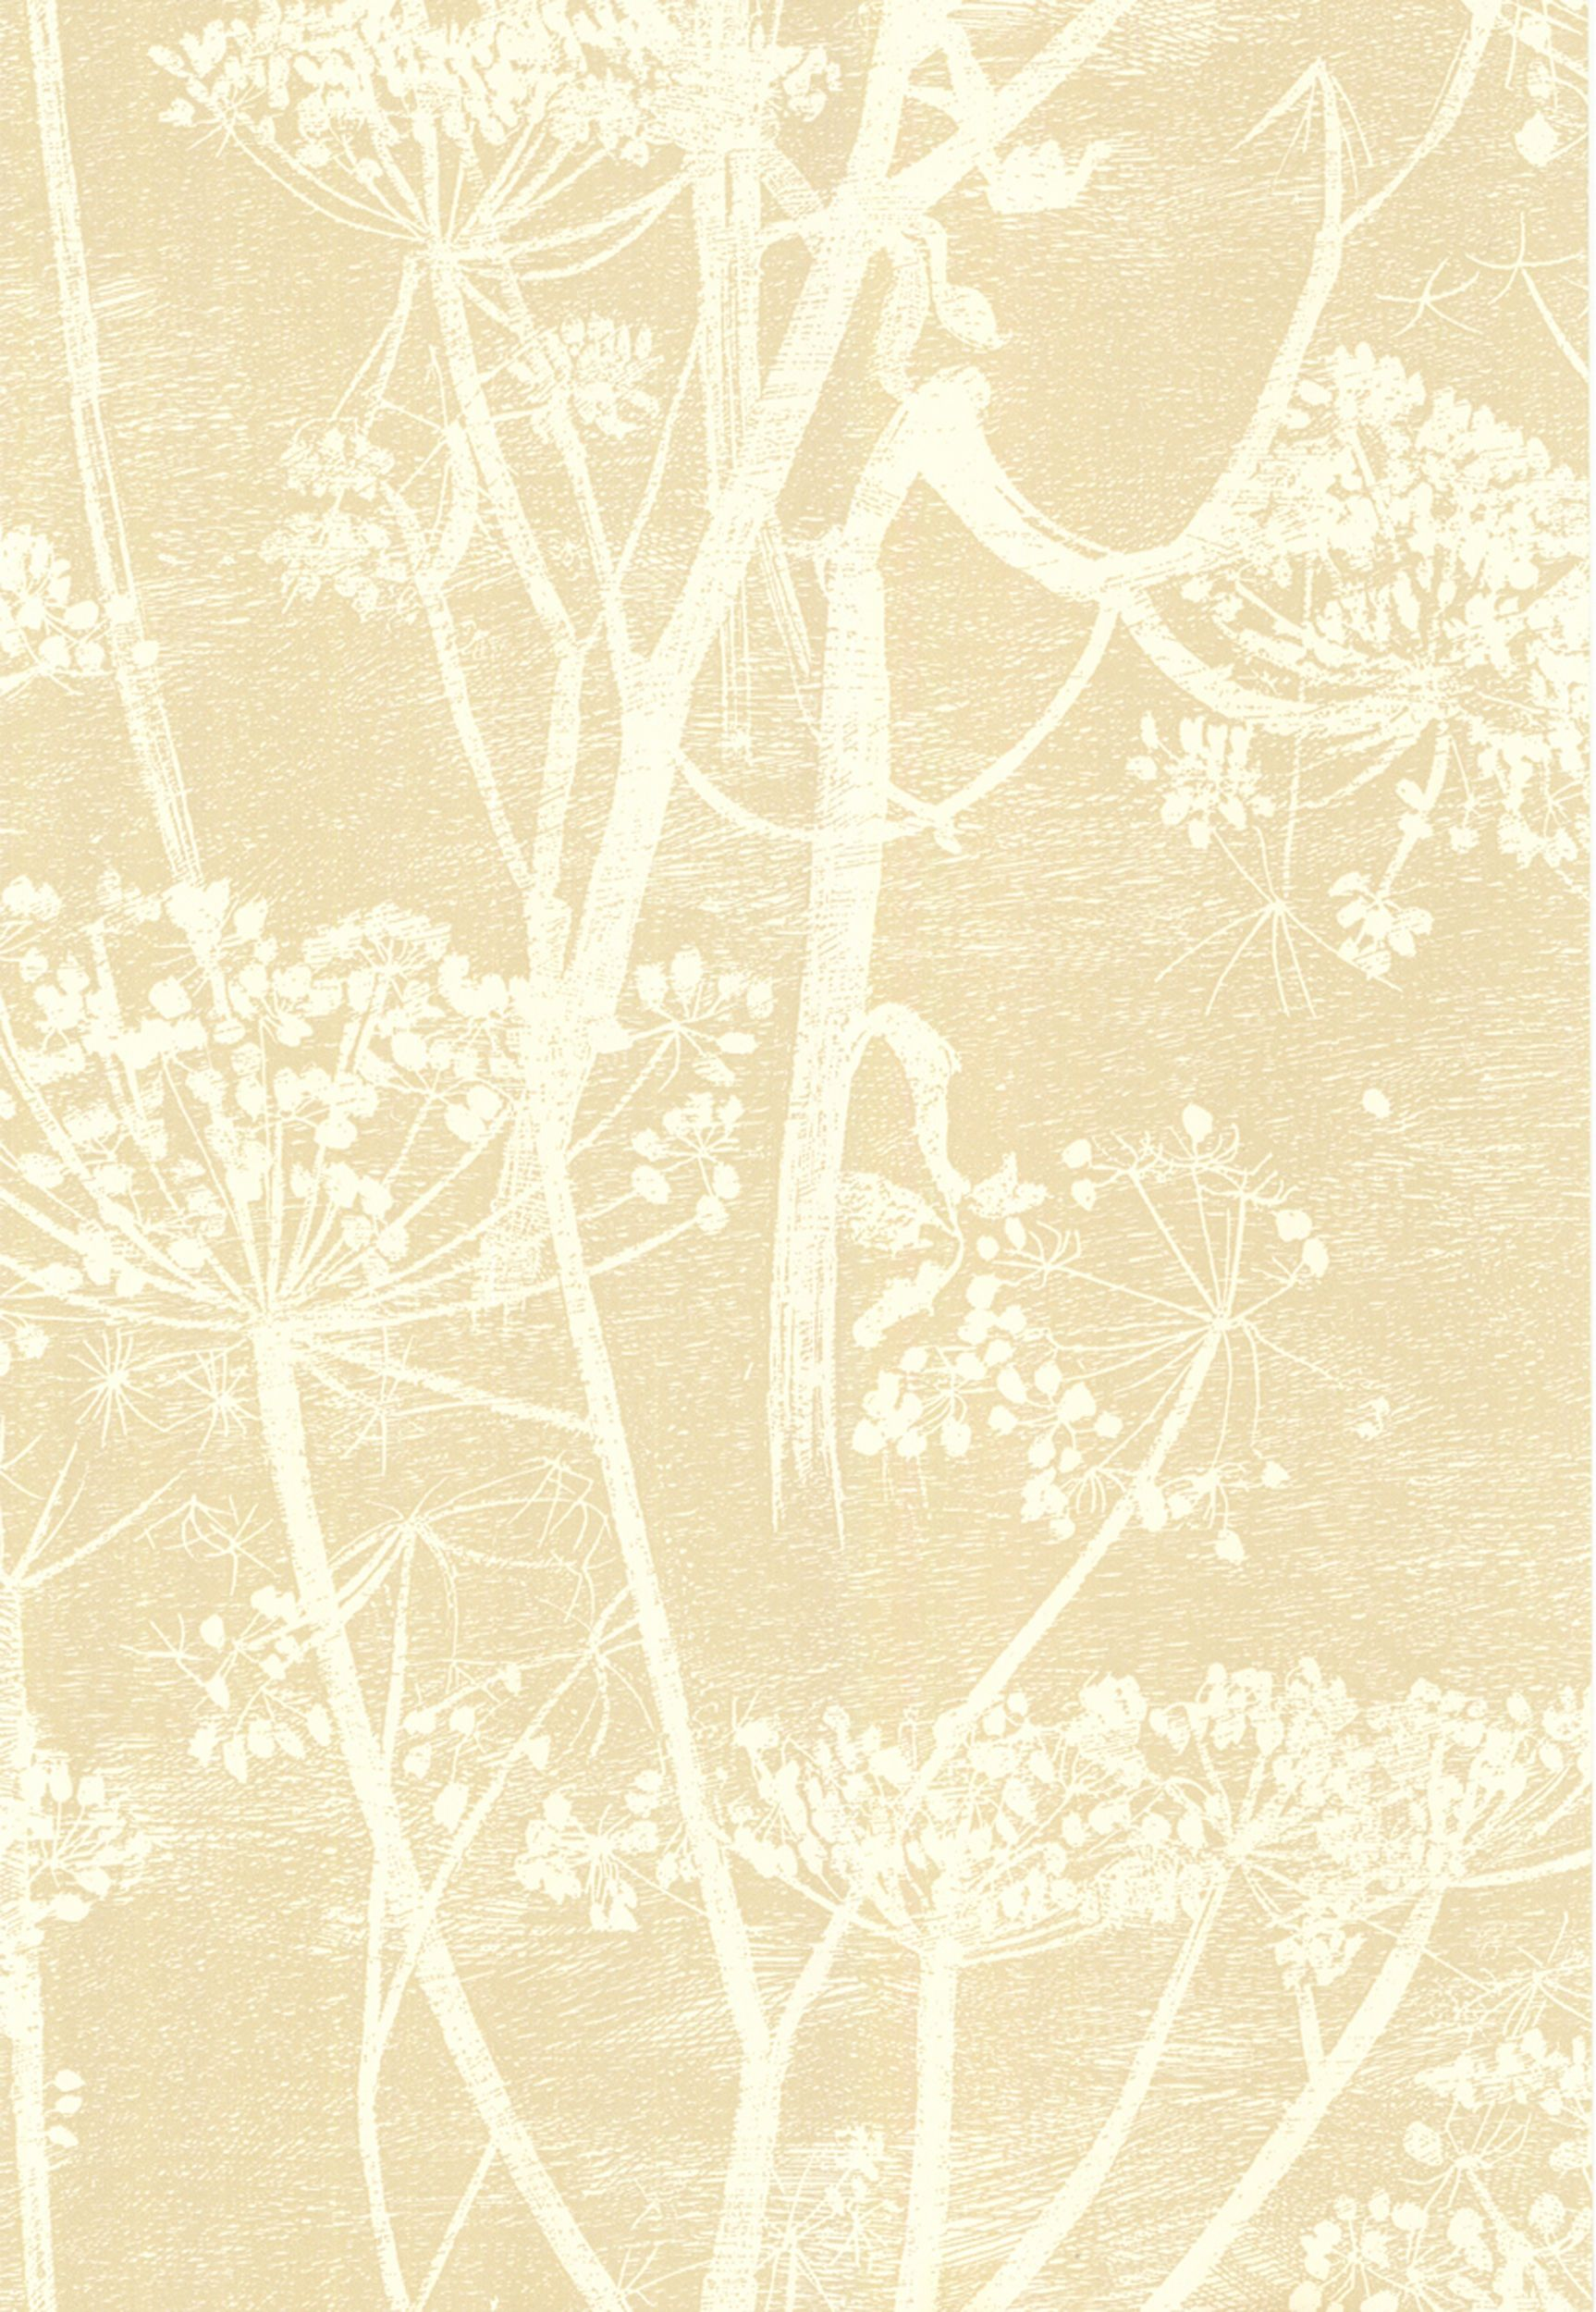 Cow Parsley White/Bge Cole and son wallpaper, Cole and